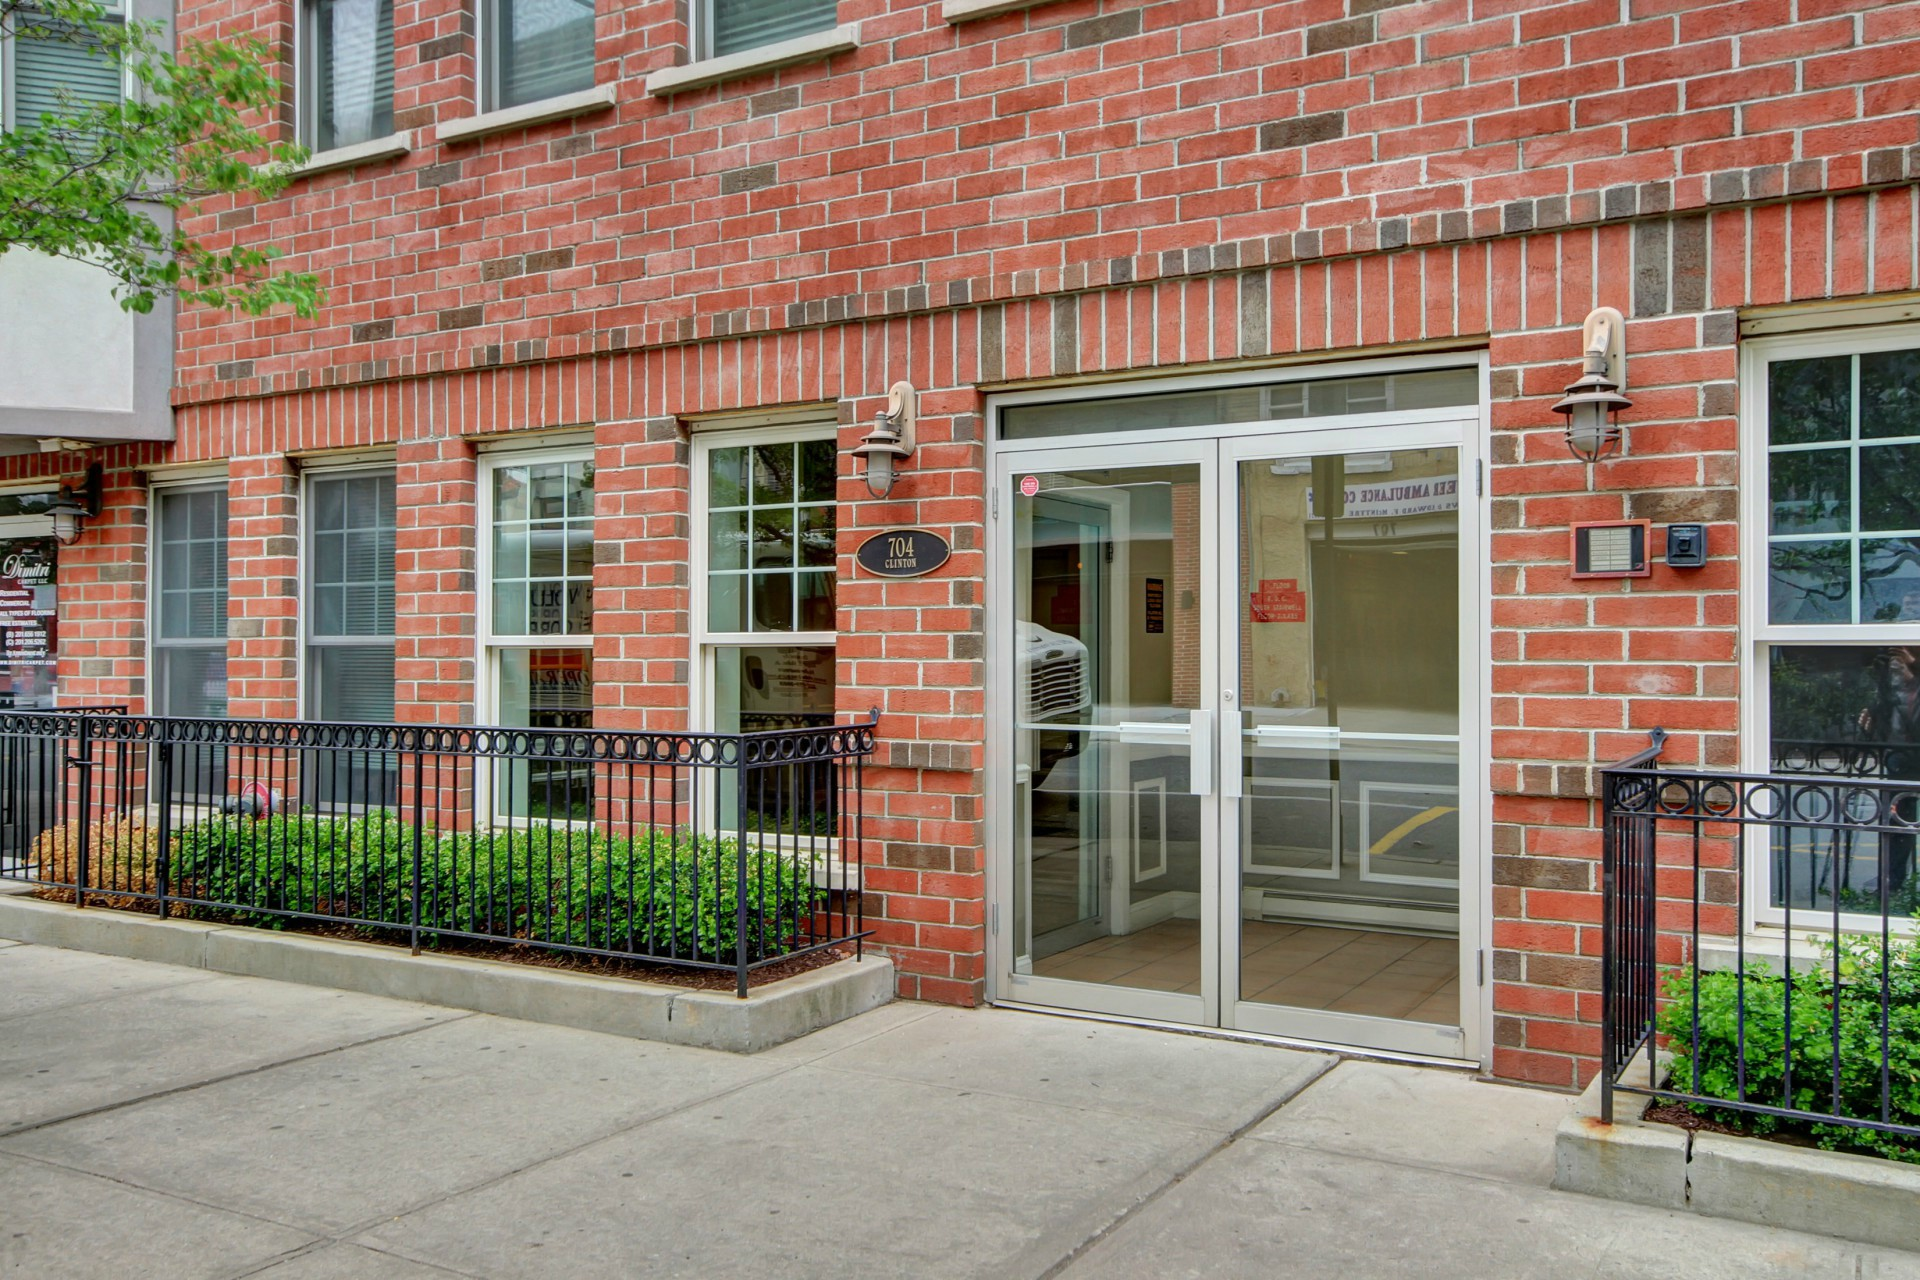 Condominium for Sale at Bright And Airy Two Bedroom 704 Clinton Street #2D Hoboken, New Jersey 07030 United States